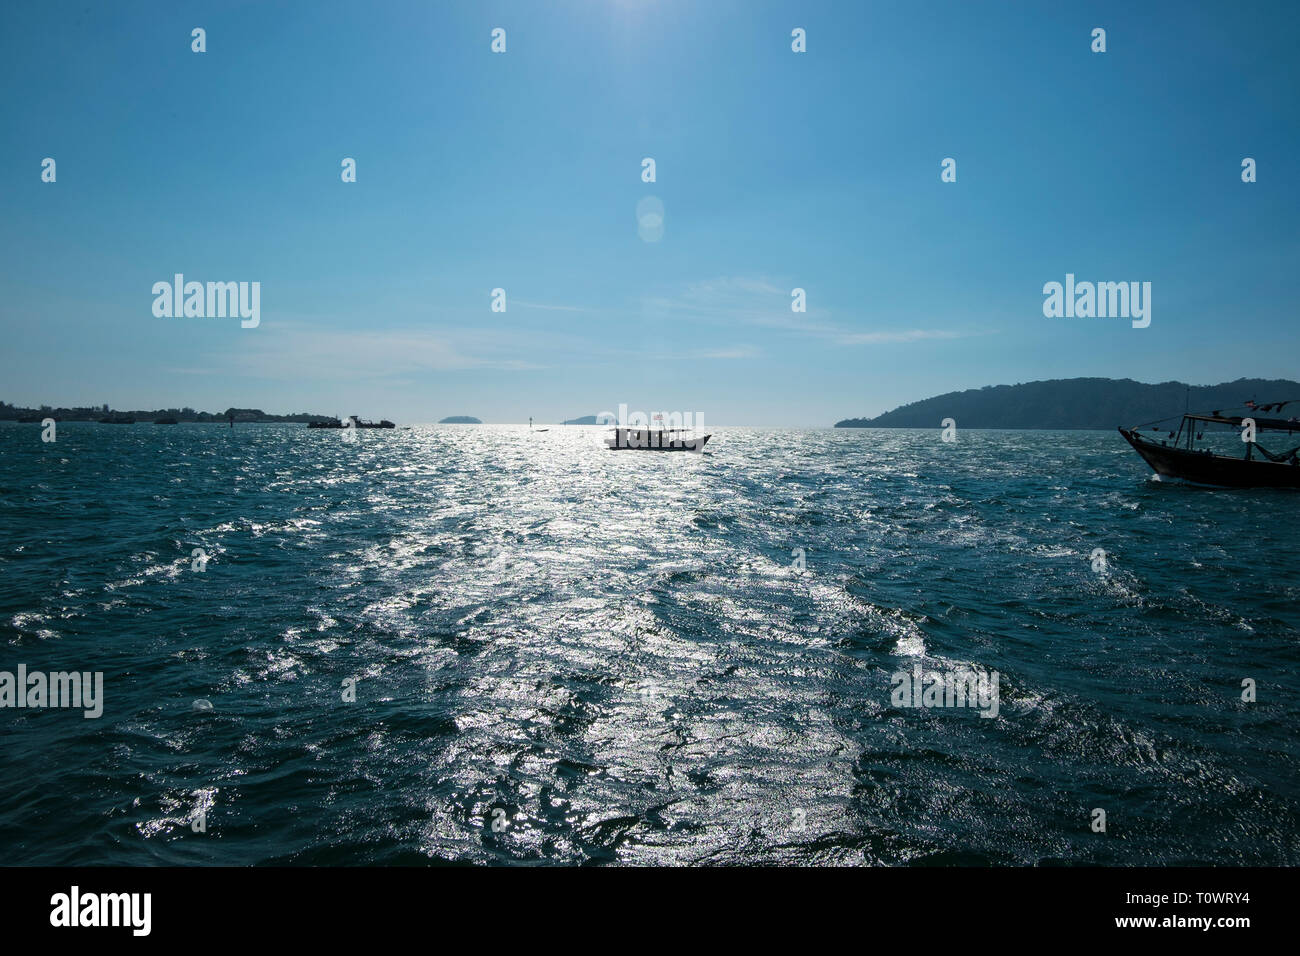 Fishing boats in silhouette on the South China Sea with a sun spike, reflection in Kota Kinabalu, Sabah, Borneo, Malaysia. - Stock Image